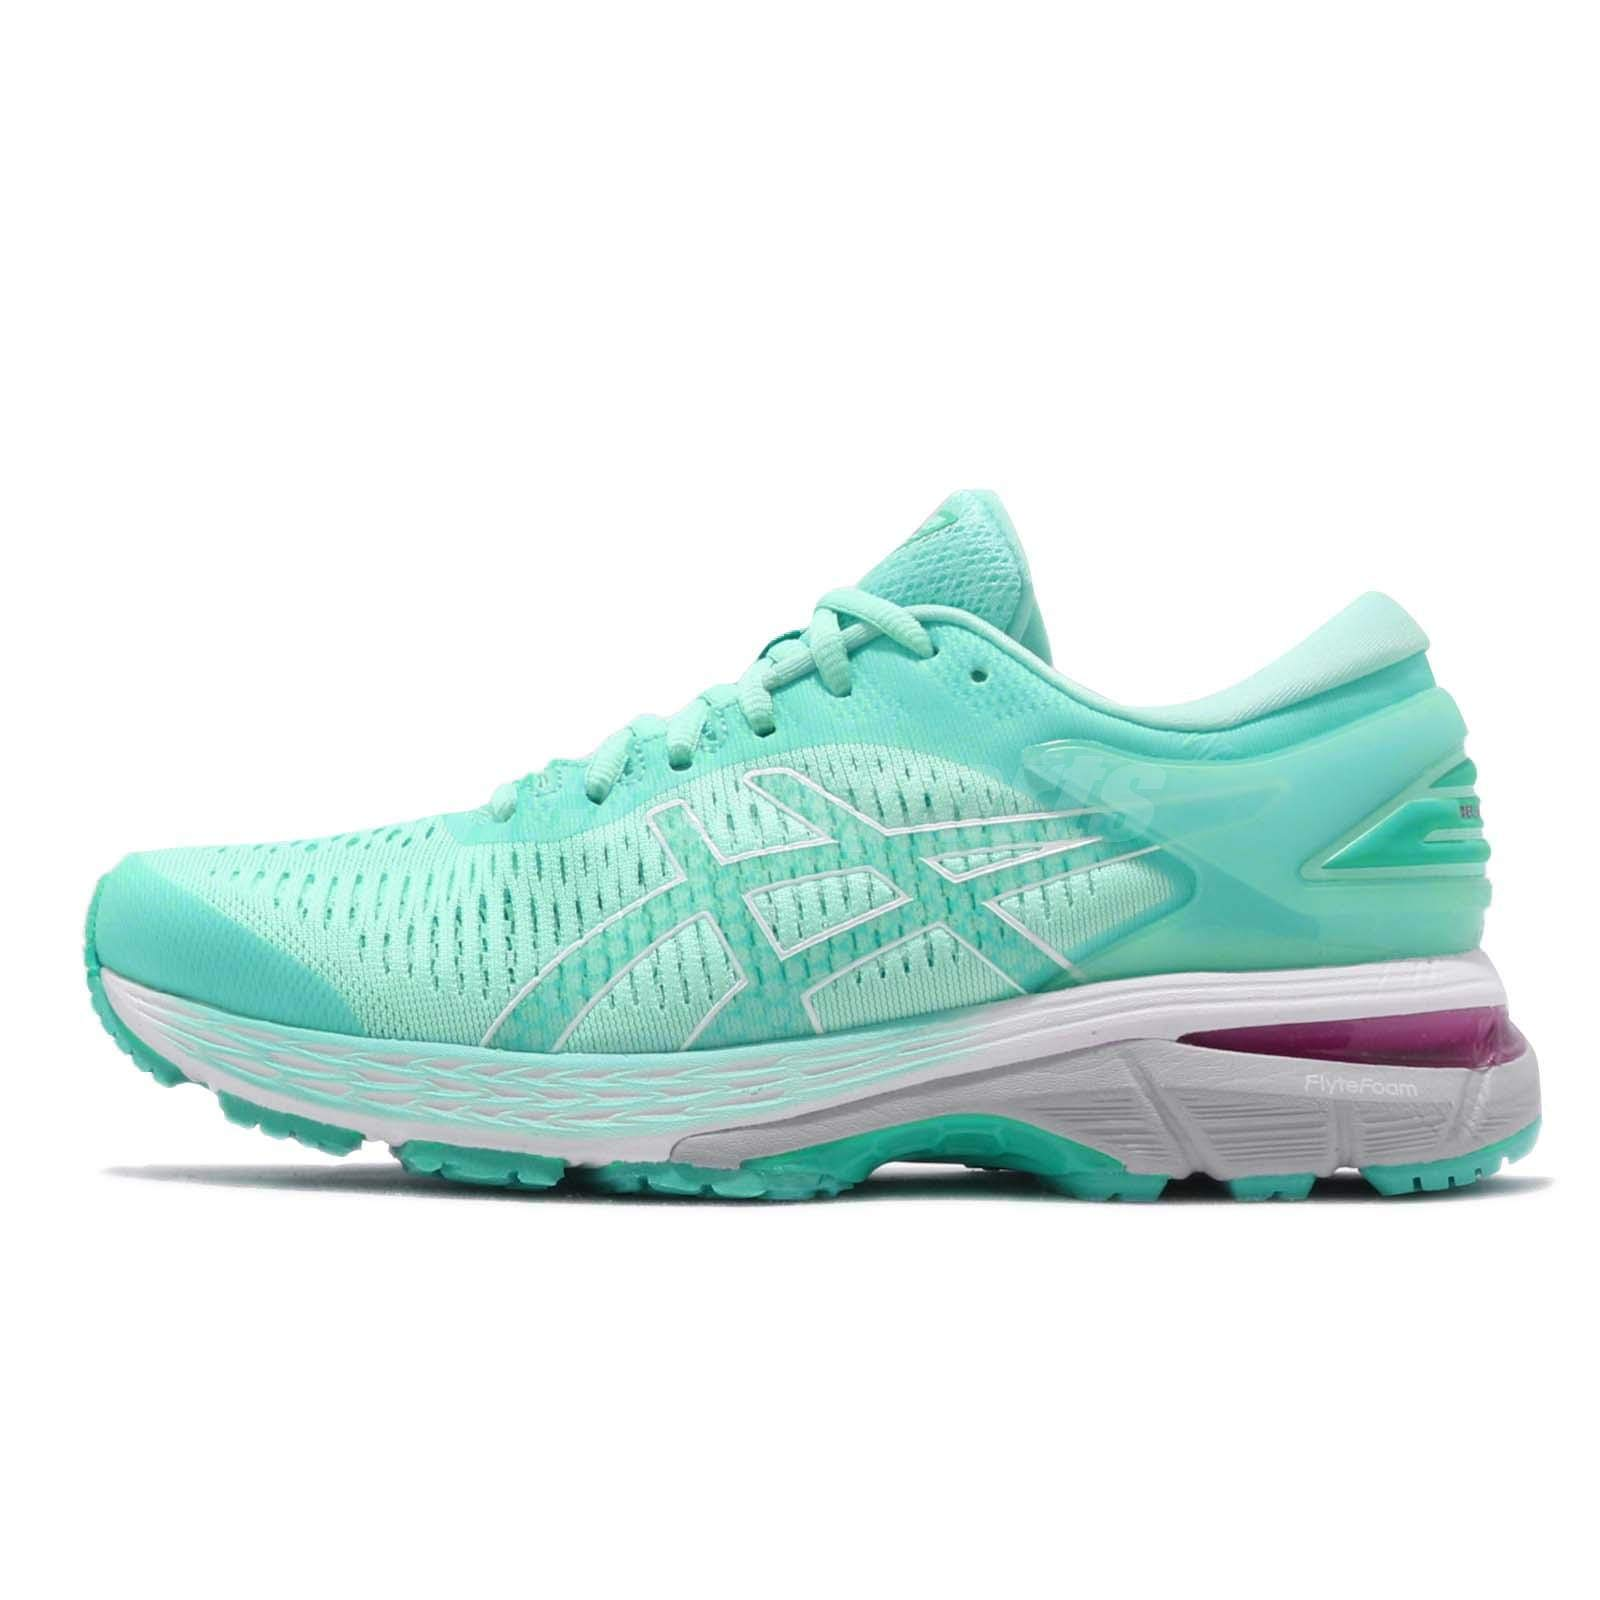 ASICS Women's Gel-Kayano 25 Running Shoes, 10, Icy Morning/Sea Glass by ASICS